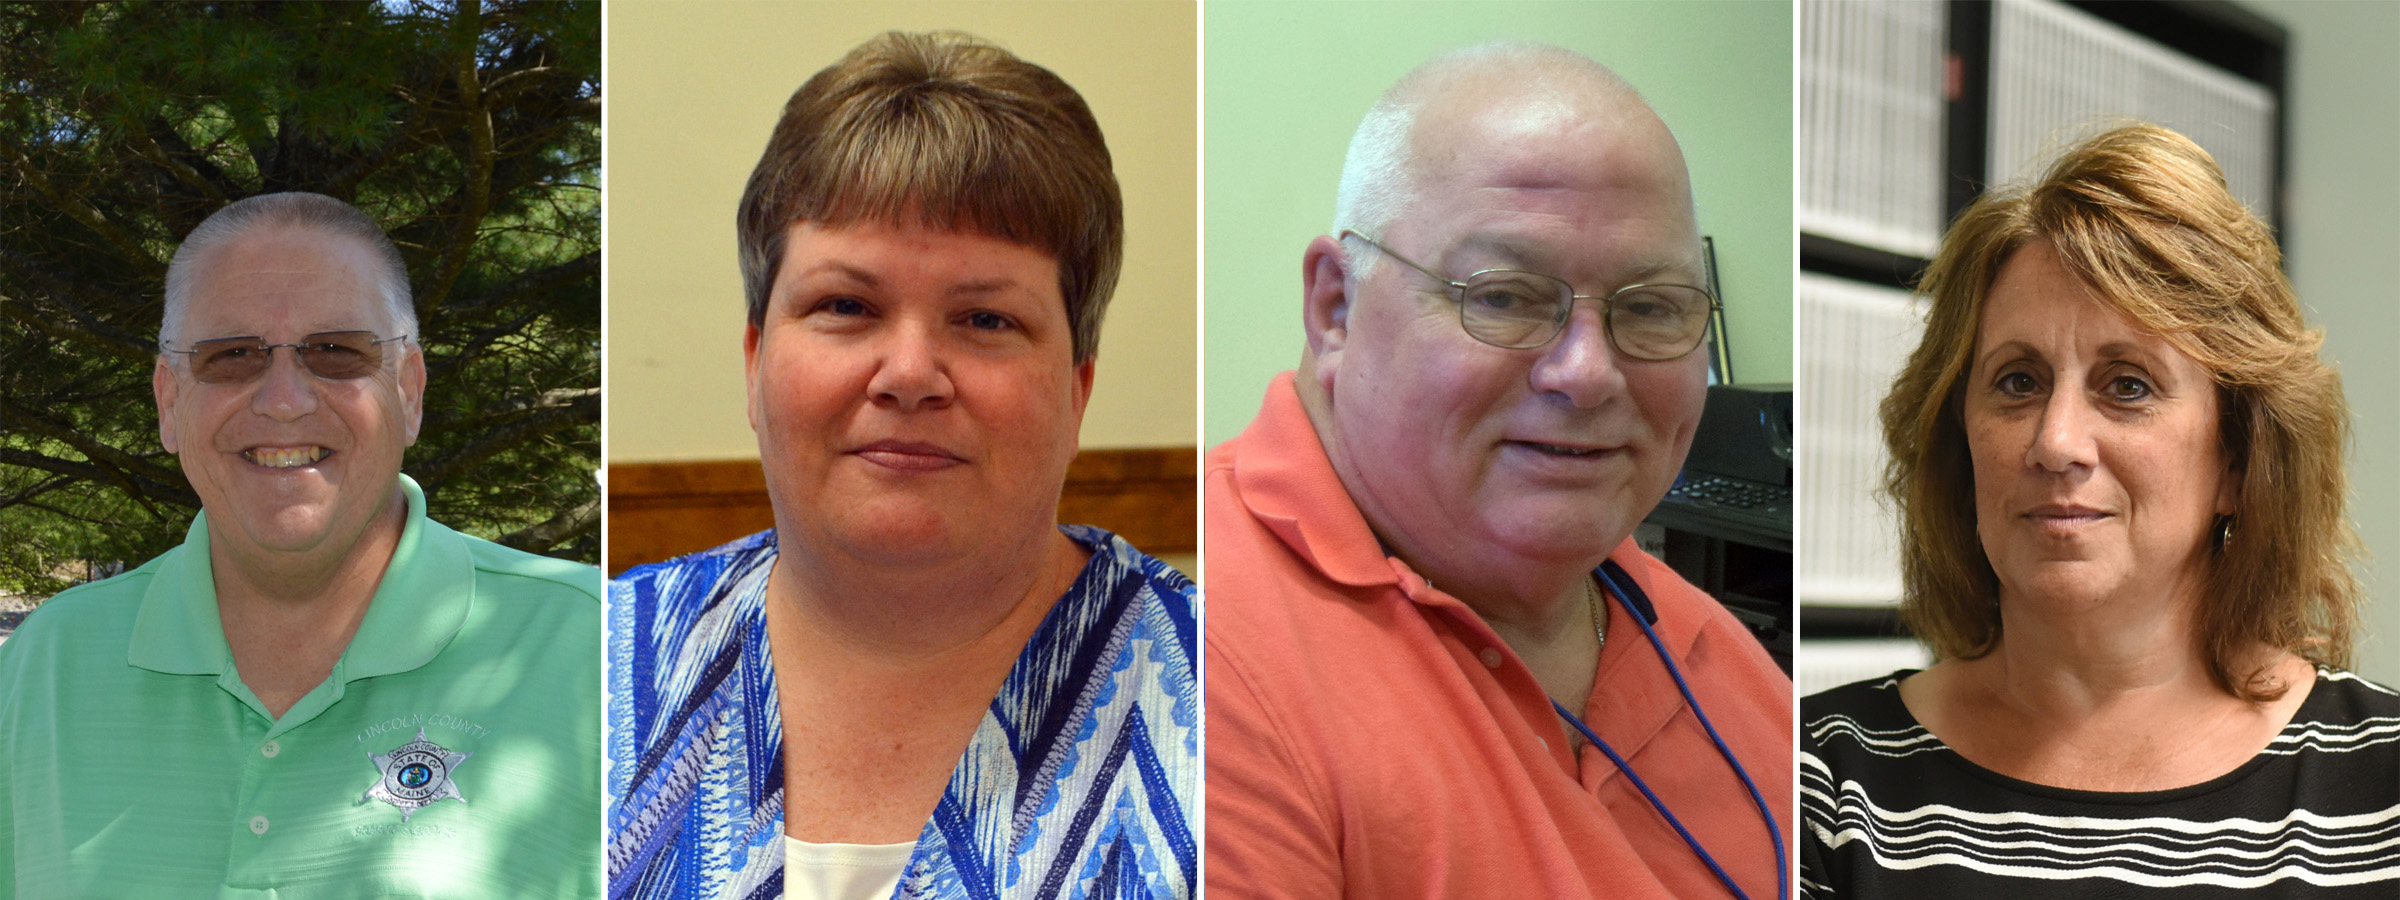 Four county office-holders are running for re-election unopposed. From left: Lincoln County Sheriff Todd Brackett, Register of Probate Catherine Moore, Treasurer Rick Newell, and Register of Deeds Rebecca Wotton.